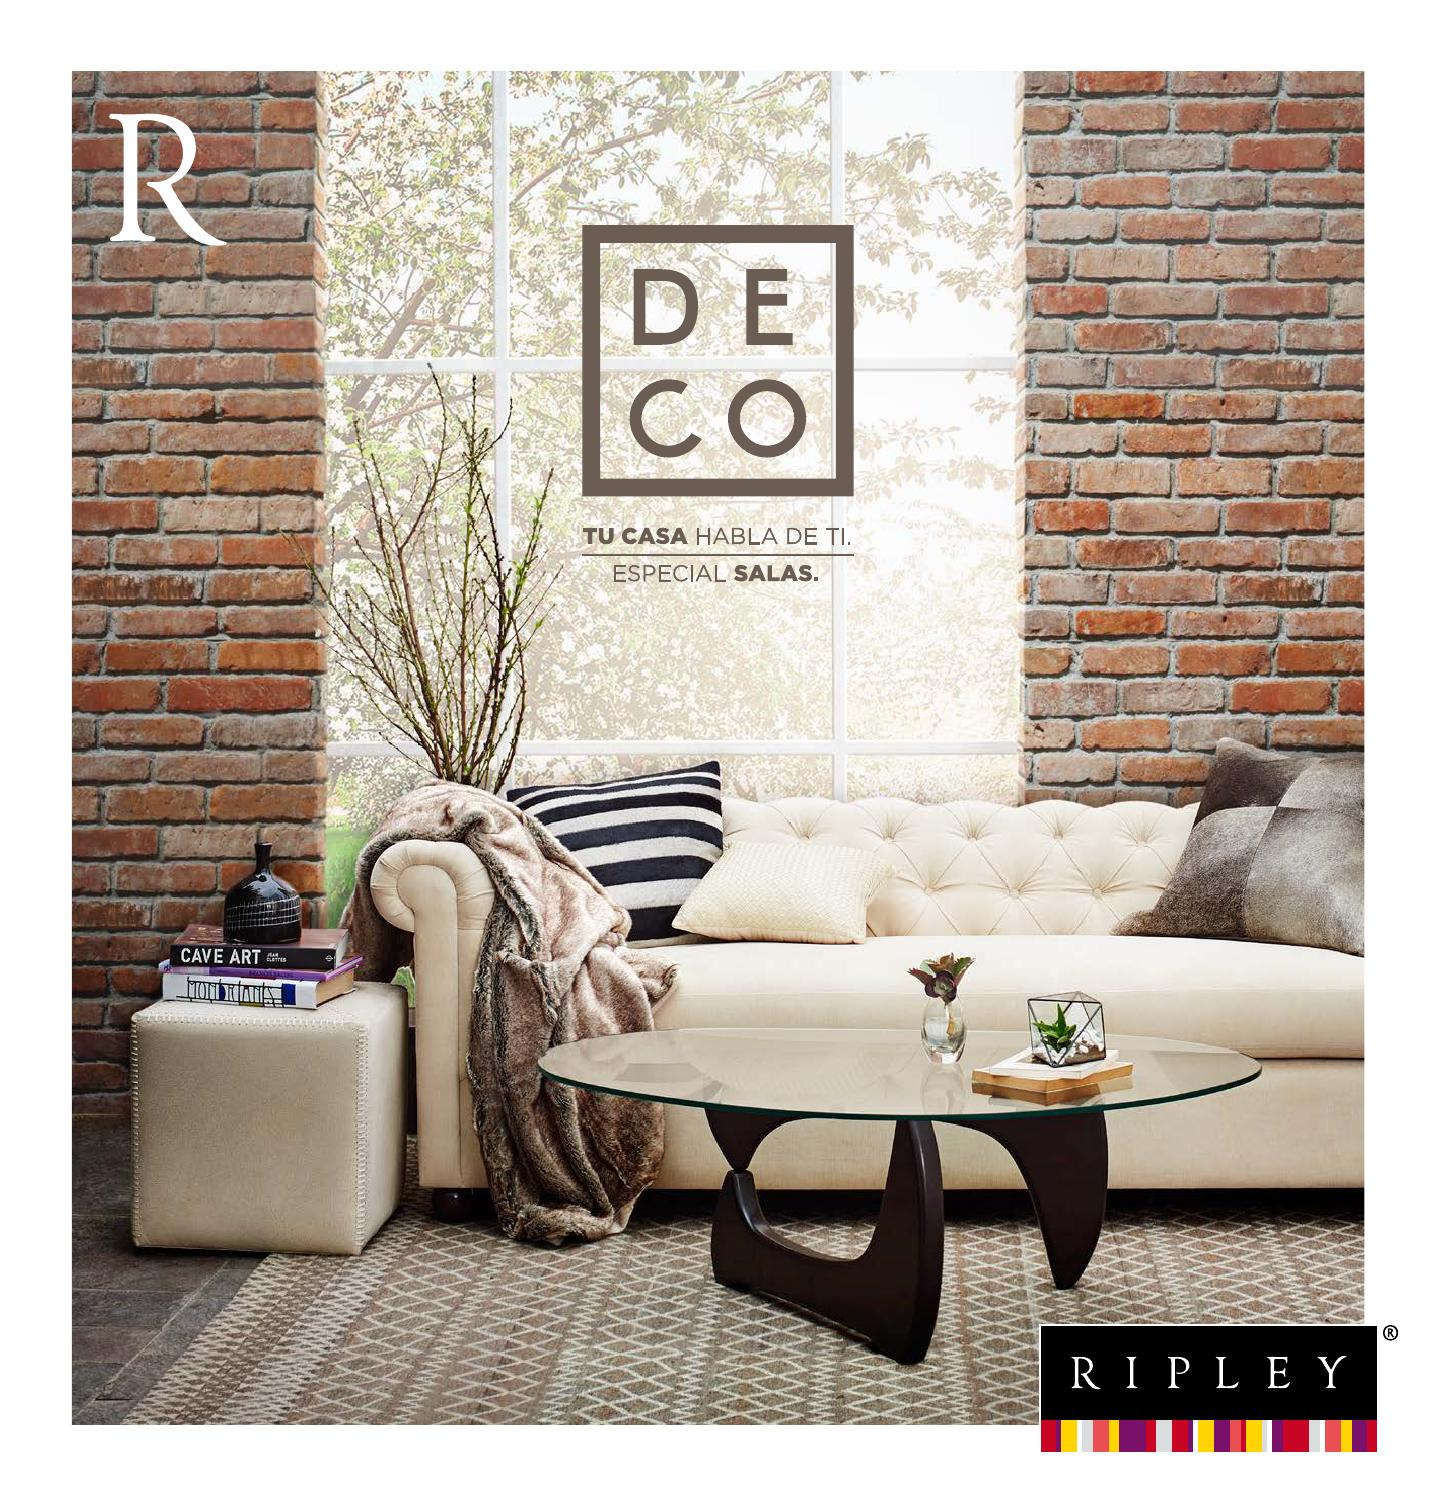 Deco especial salas by ripley peru issuu for Ripley muebles comedor